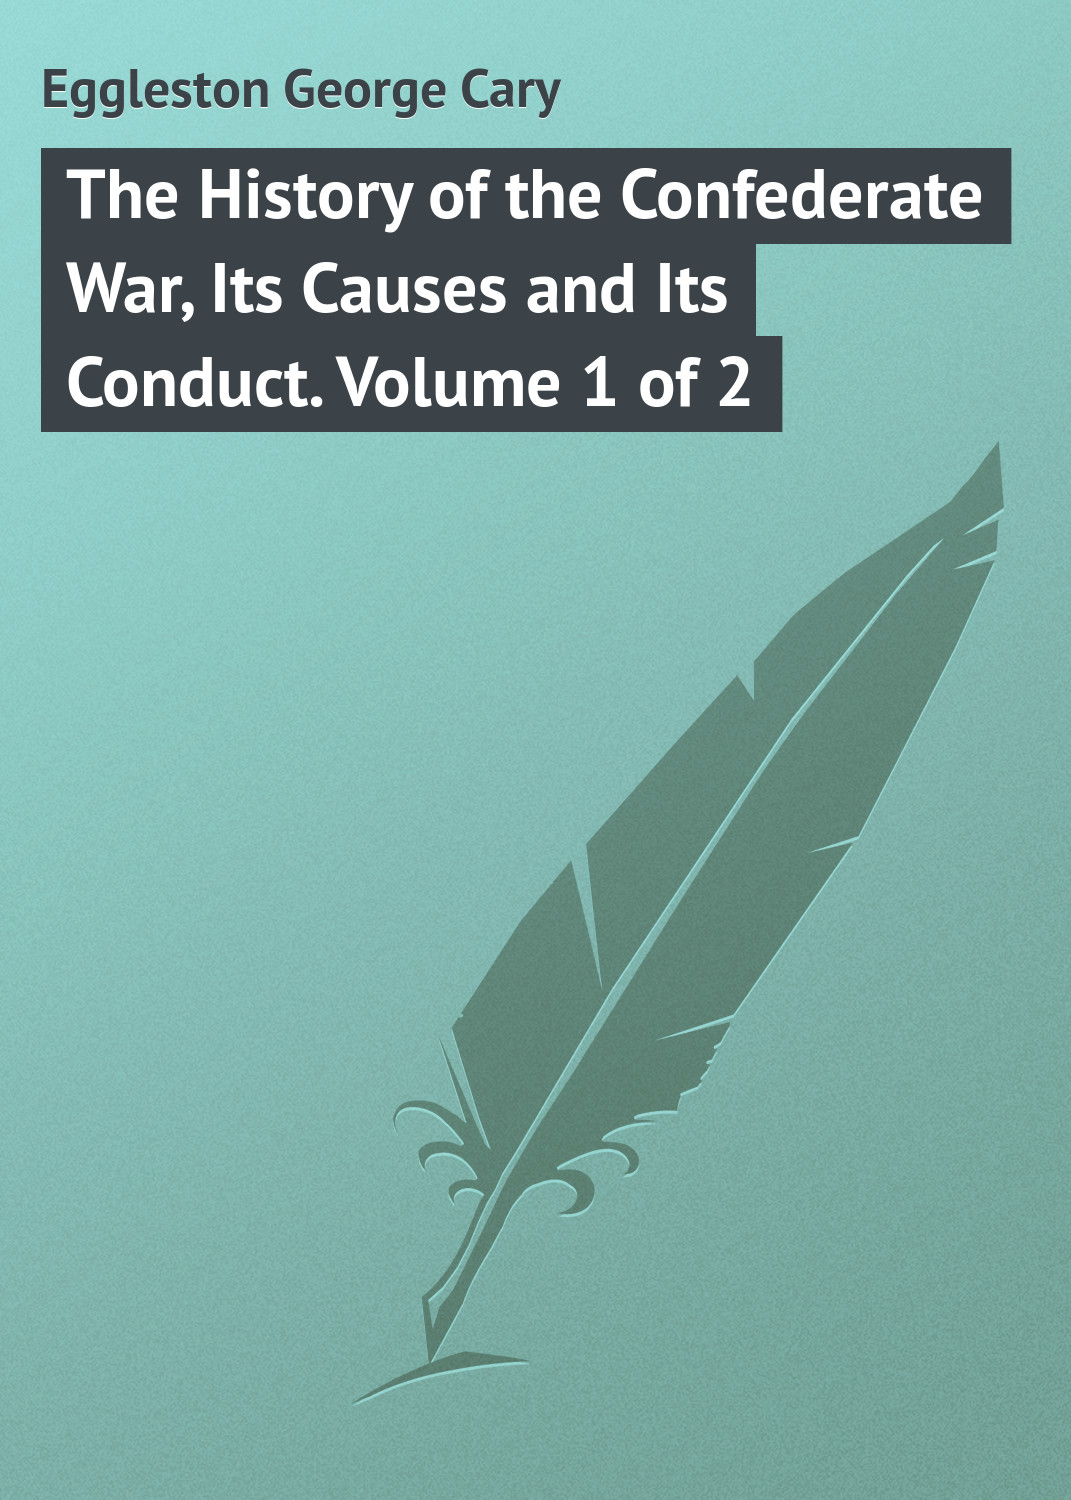 Eggleston George Cary The History of the Confederate War, Its Causes and Its Conduct. Volume 1 of 2 g l shumway history of western nebraska and its people volume 3 part 1